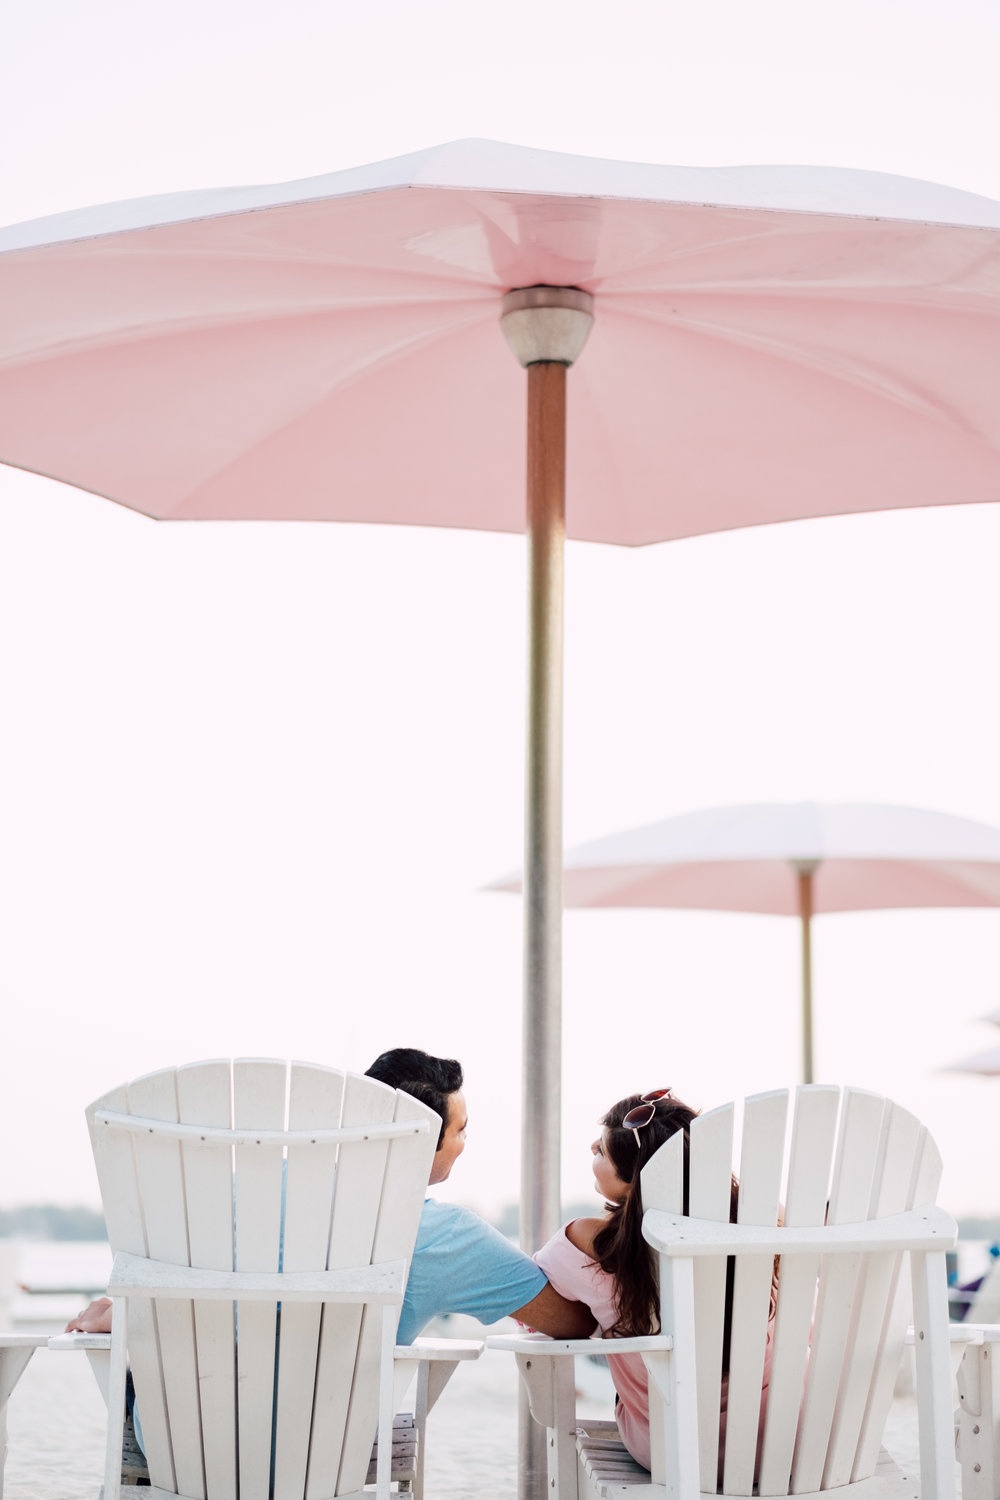 Proposal photography_dave&palavi_edit1_youthebestphotography-77.jpg